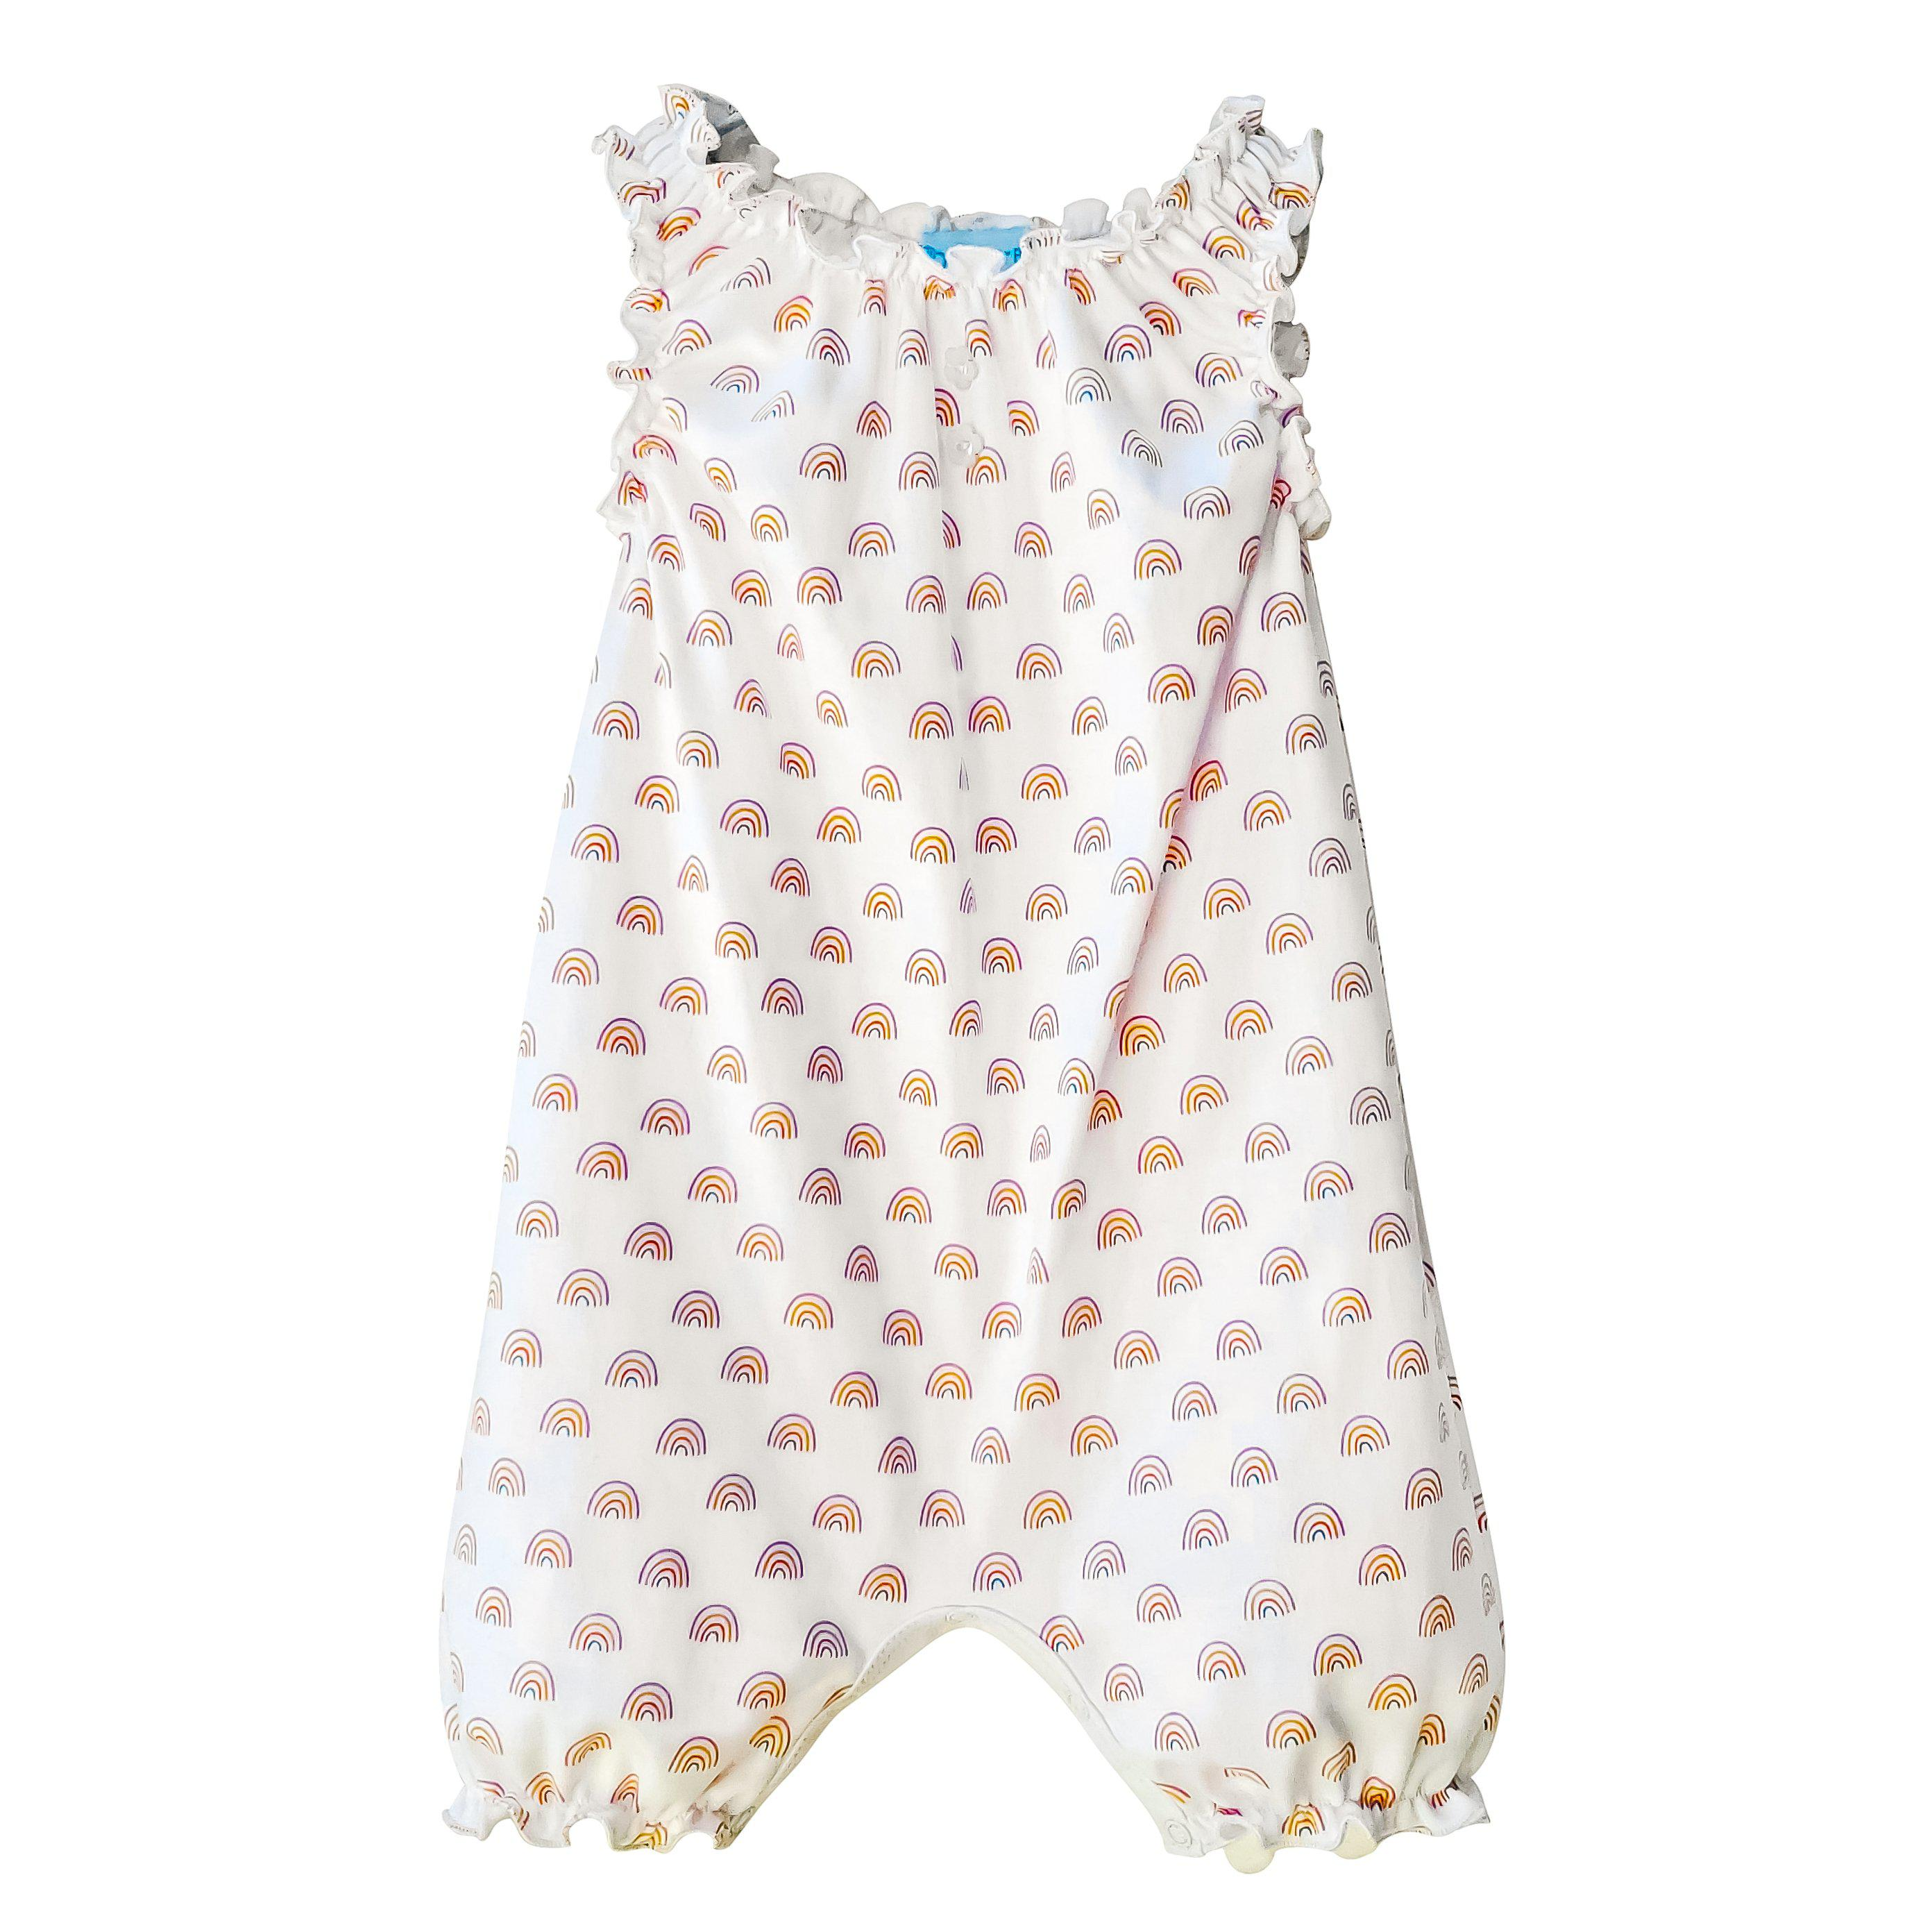 Sleeveless Romper - Rainbows on White